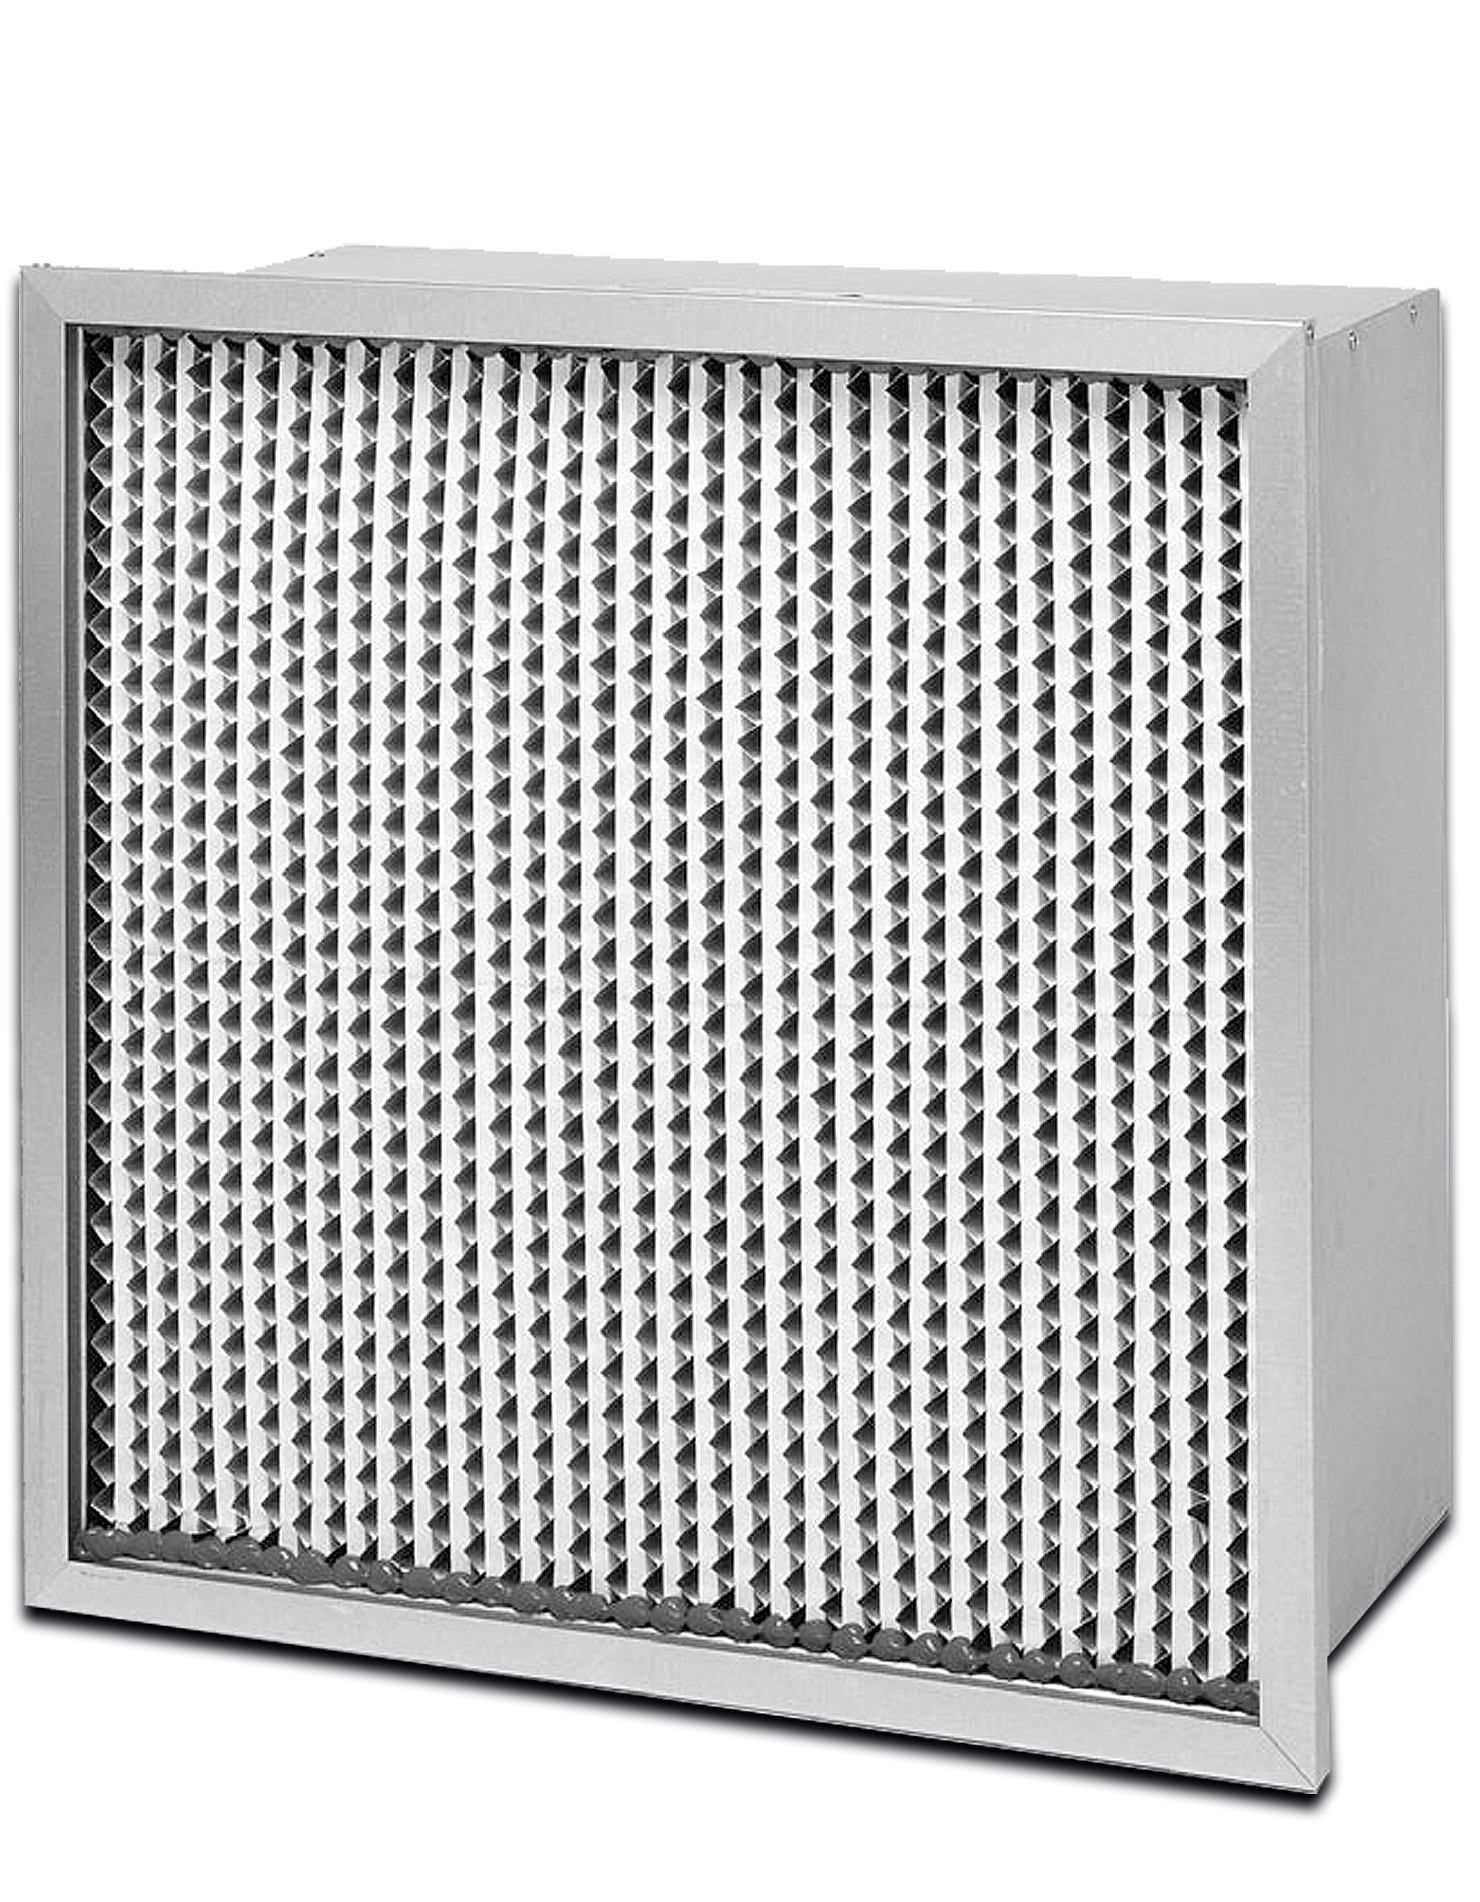 Purolator High Temperature Box Filter